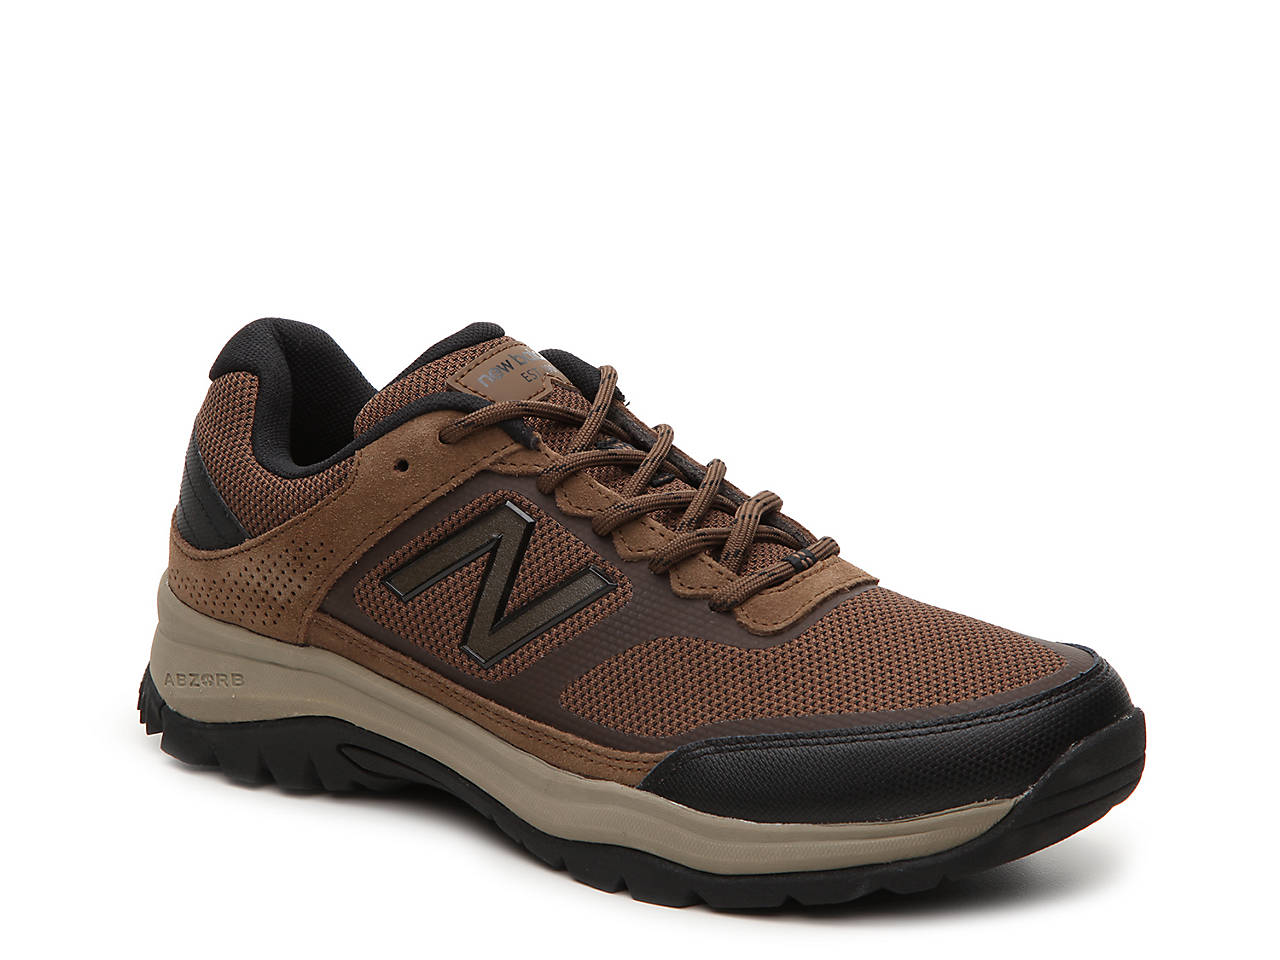 New Balance 669 Trail Walking Shoe - Men s Men s Shoes  6869439ff